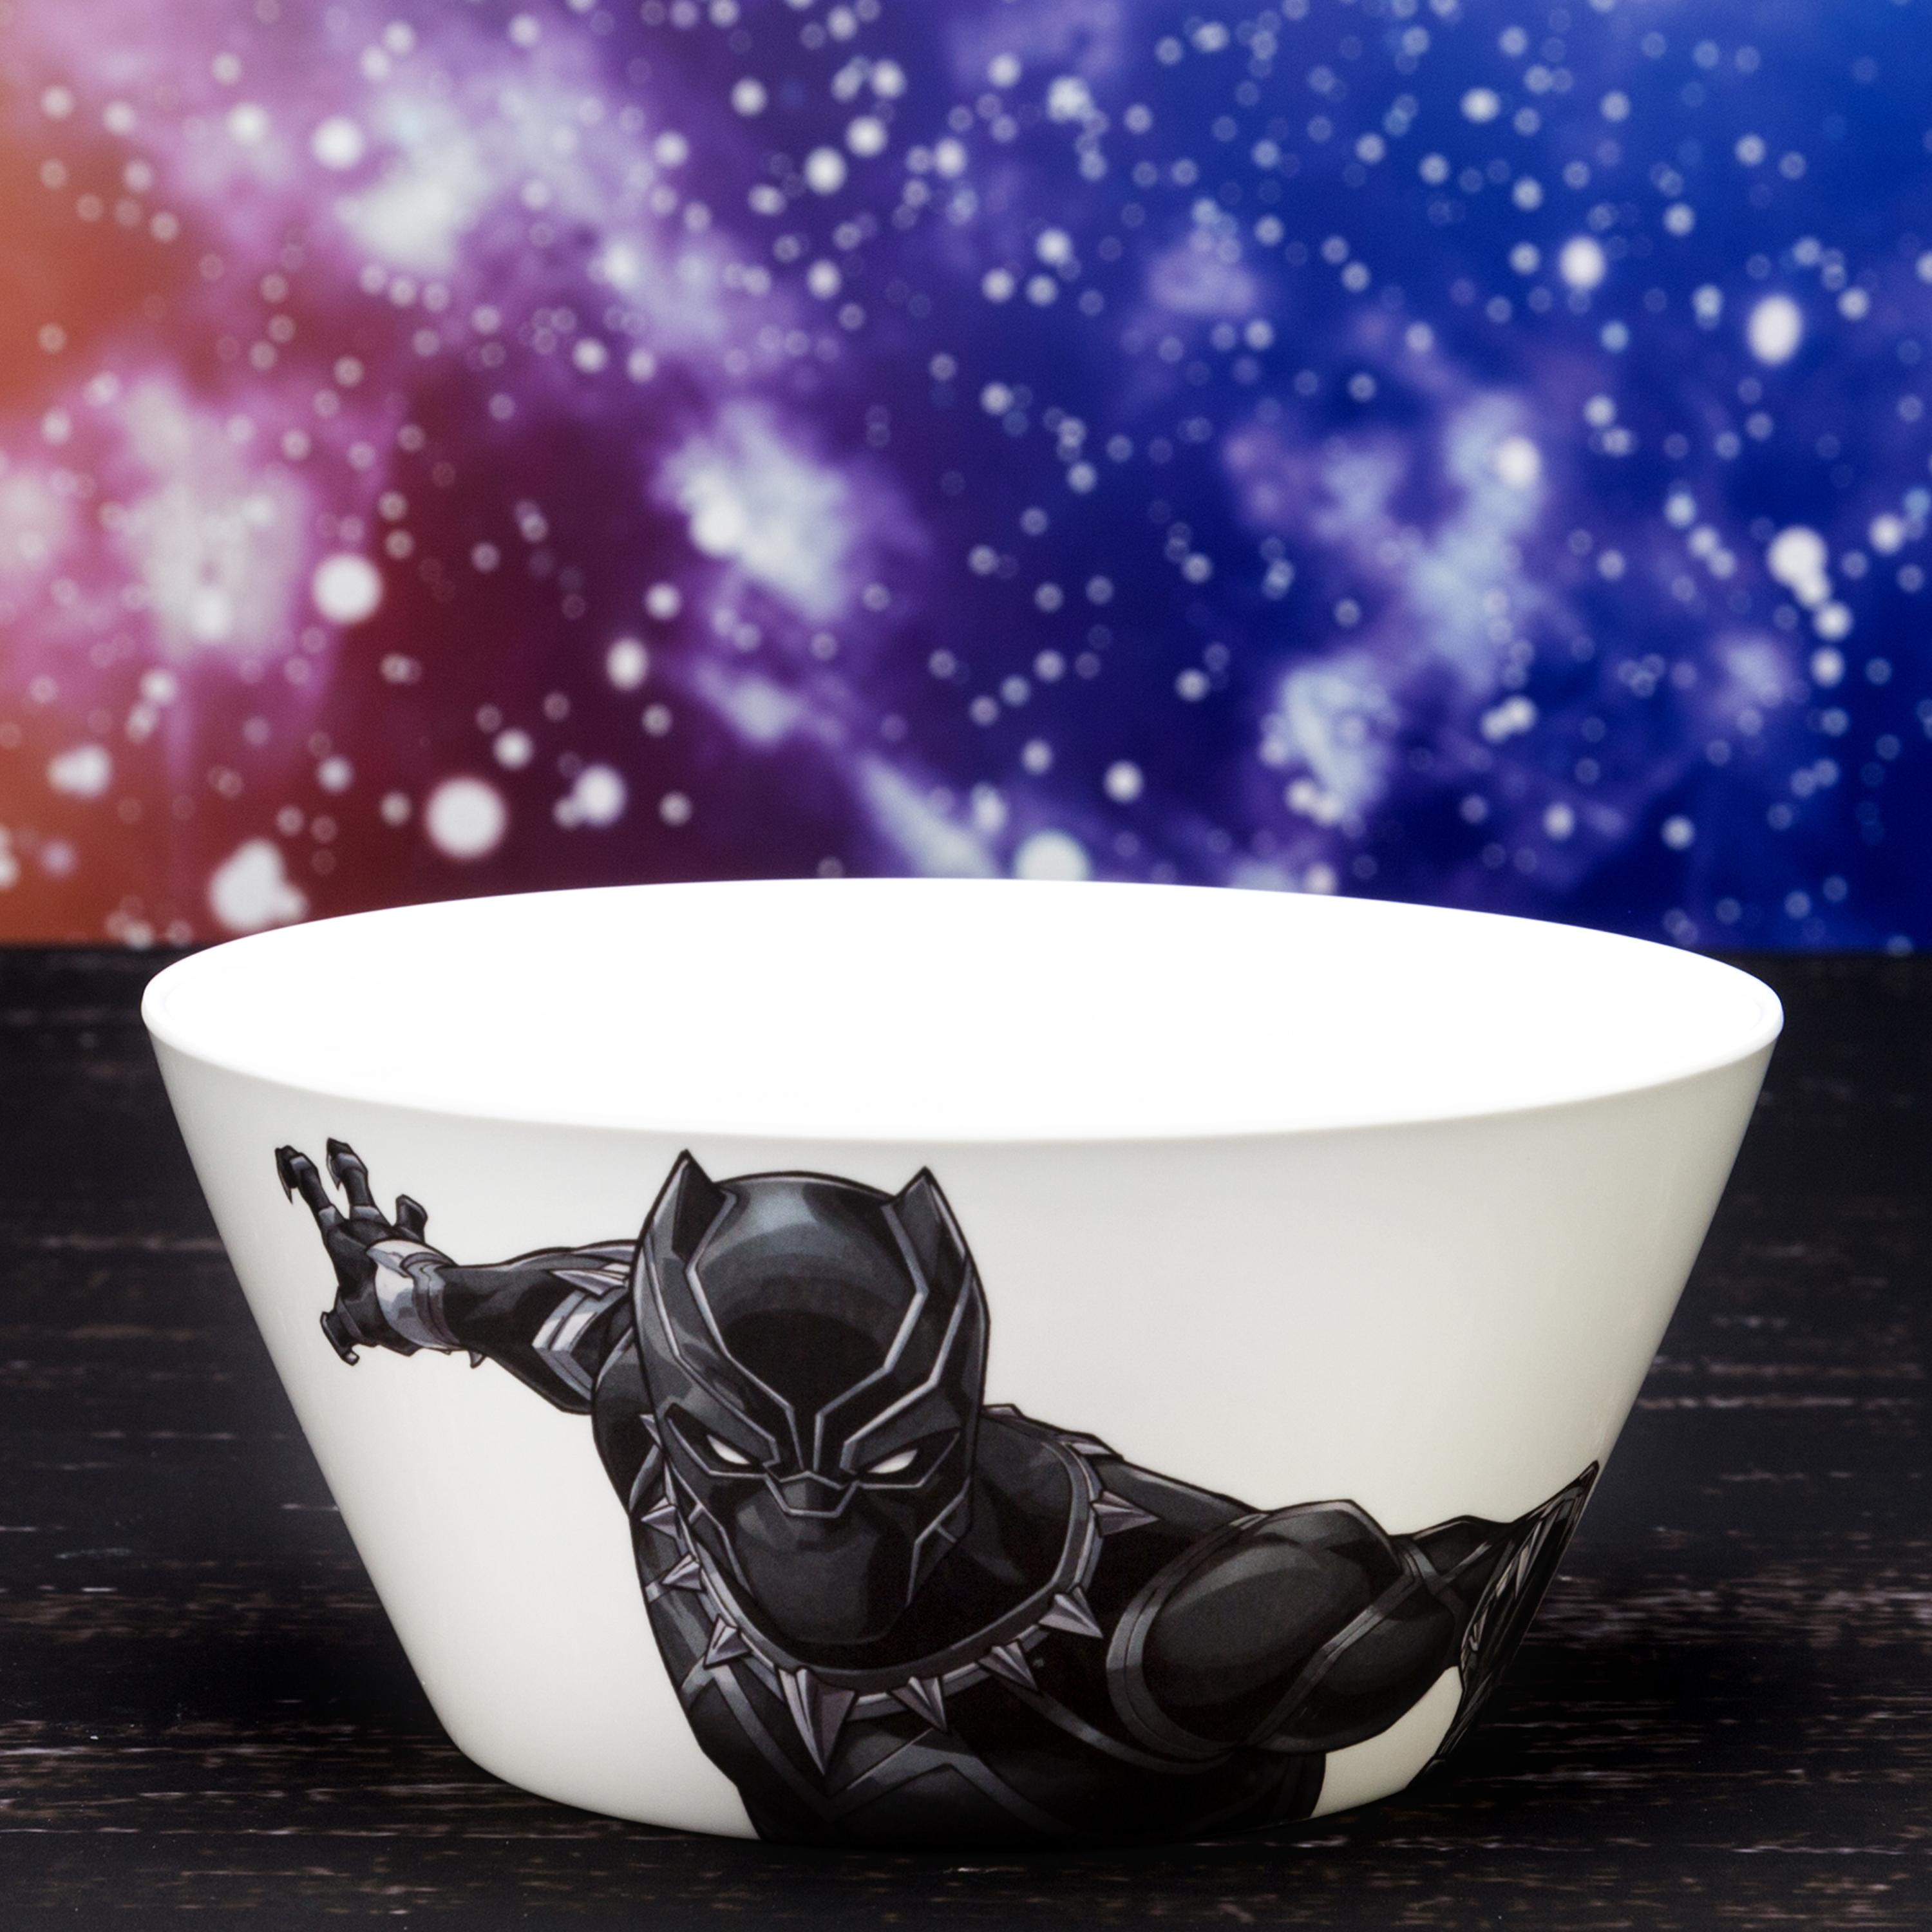 Marvel Comics Dinnerware Set, Black Panther & The Avengers, 2-piece set slideshow image 5